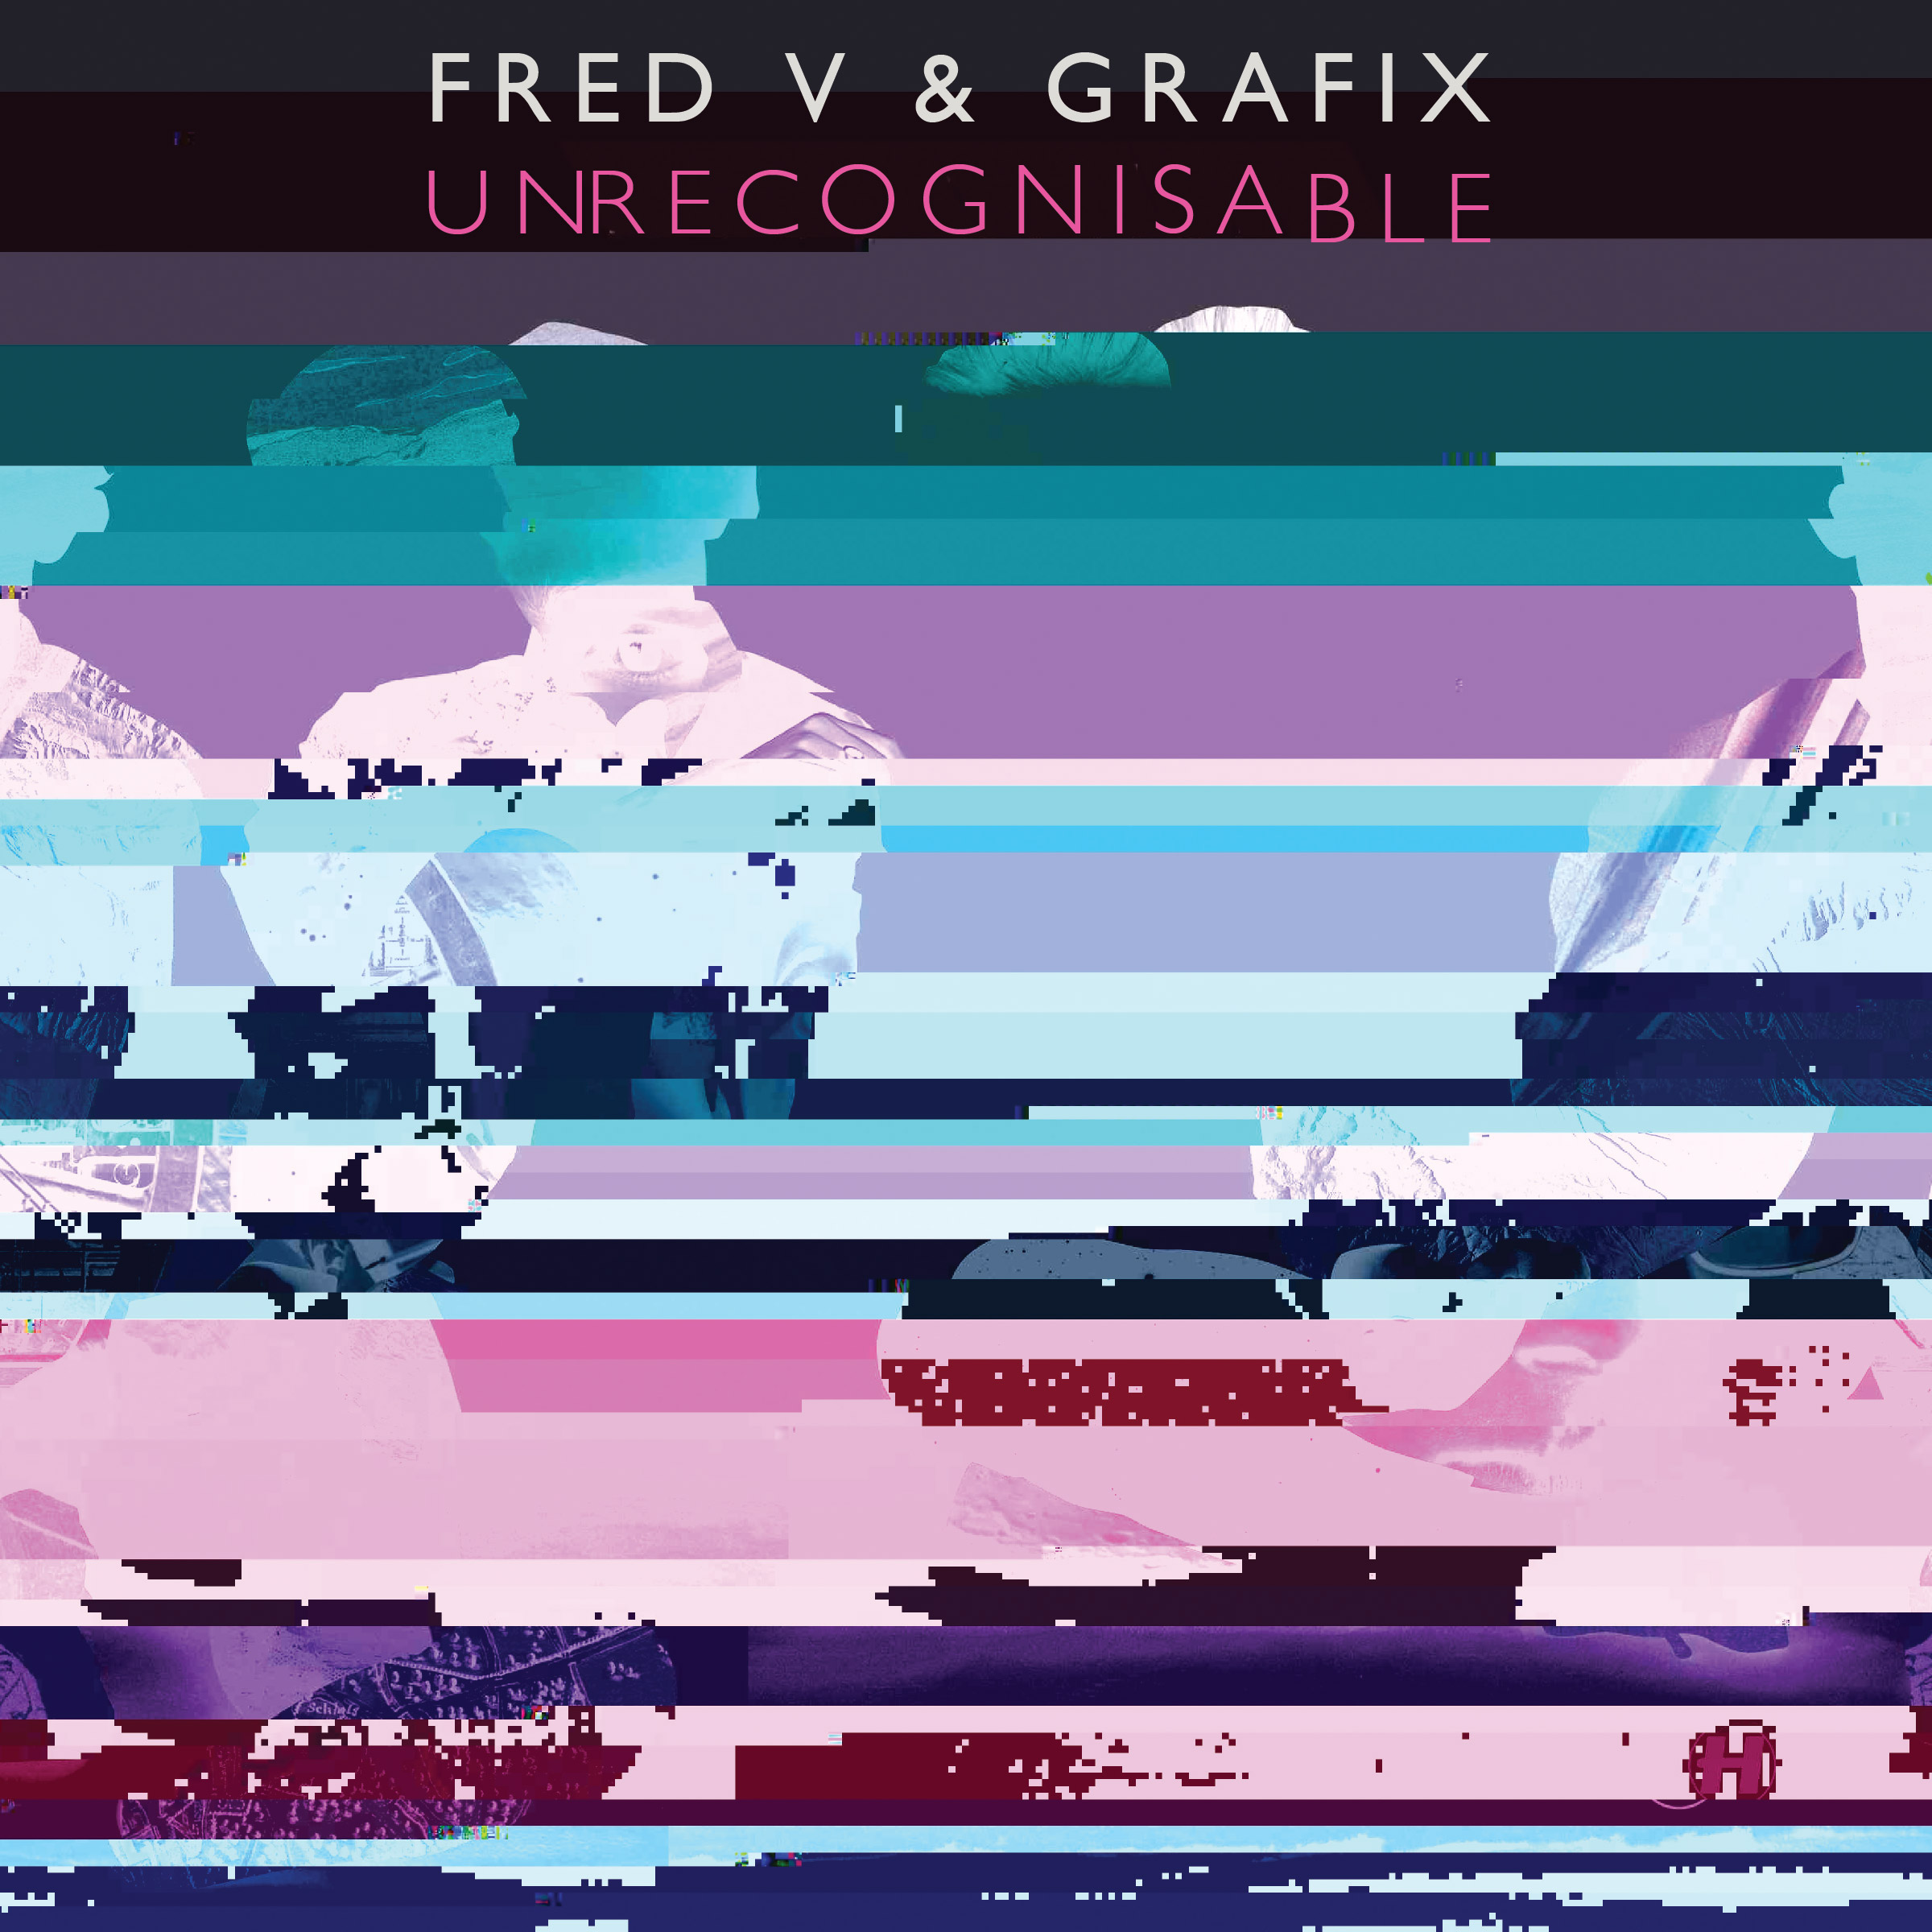 Fred V & Grafix/UNRECOGNISABLE CD